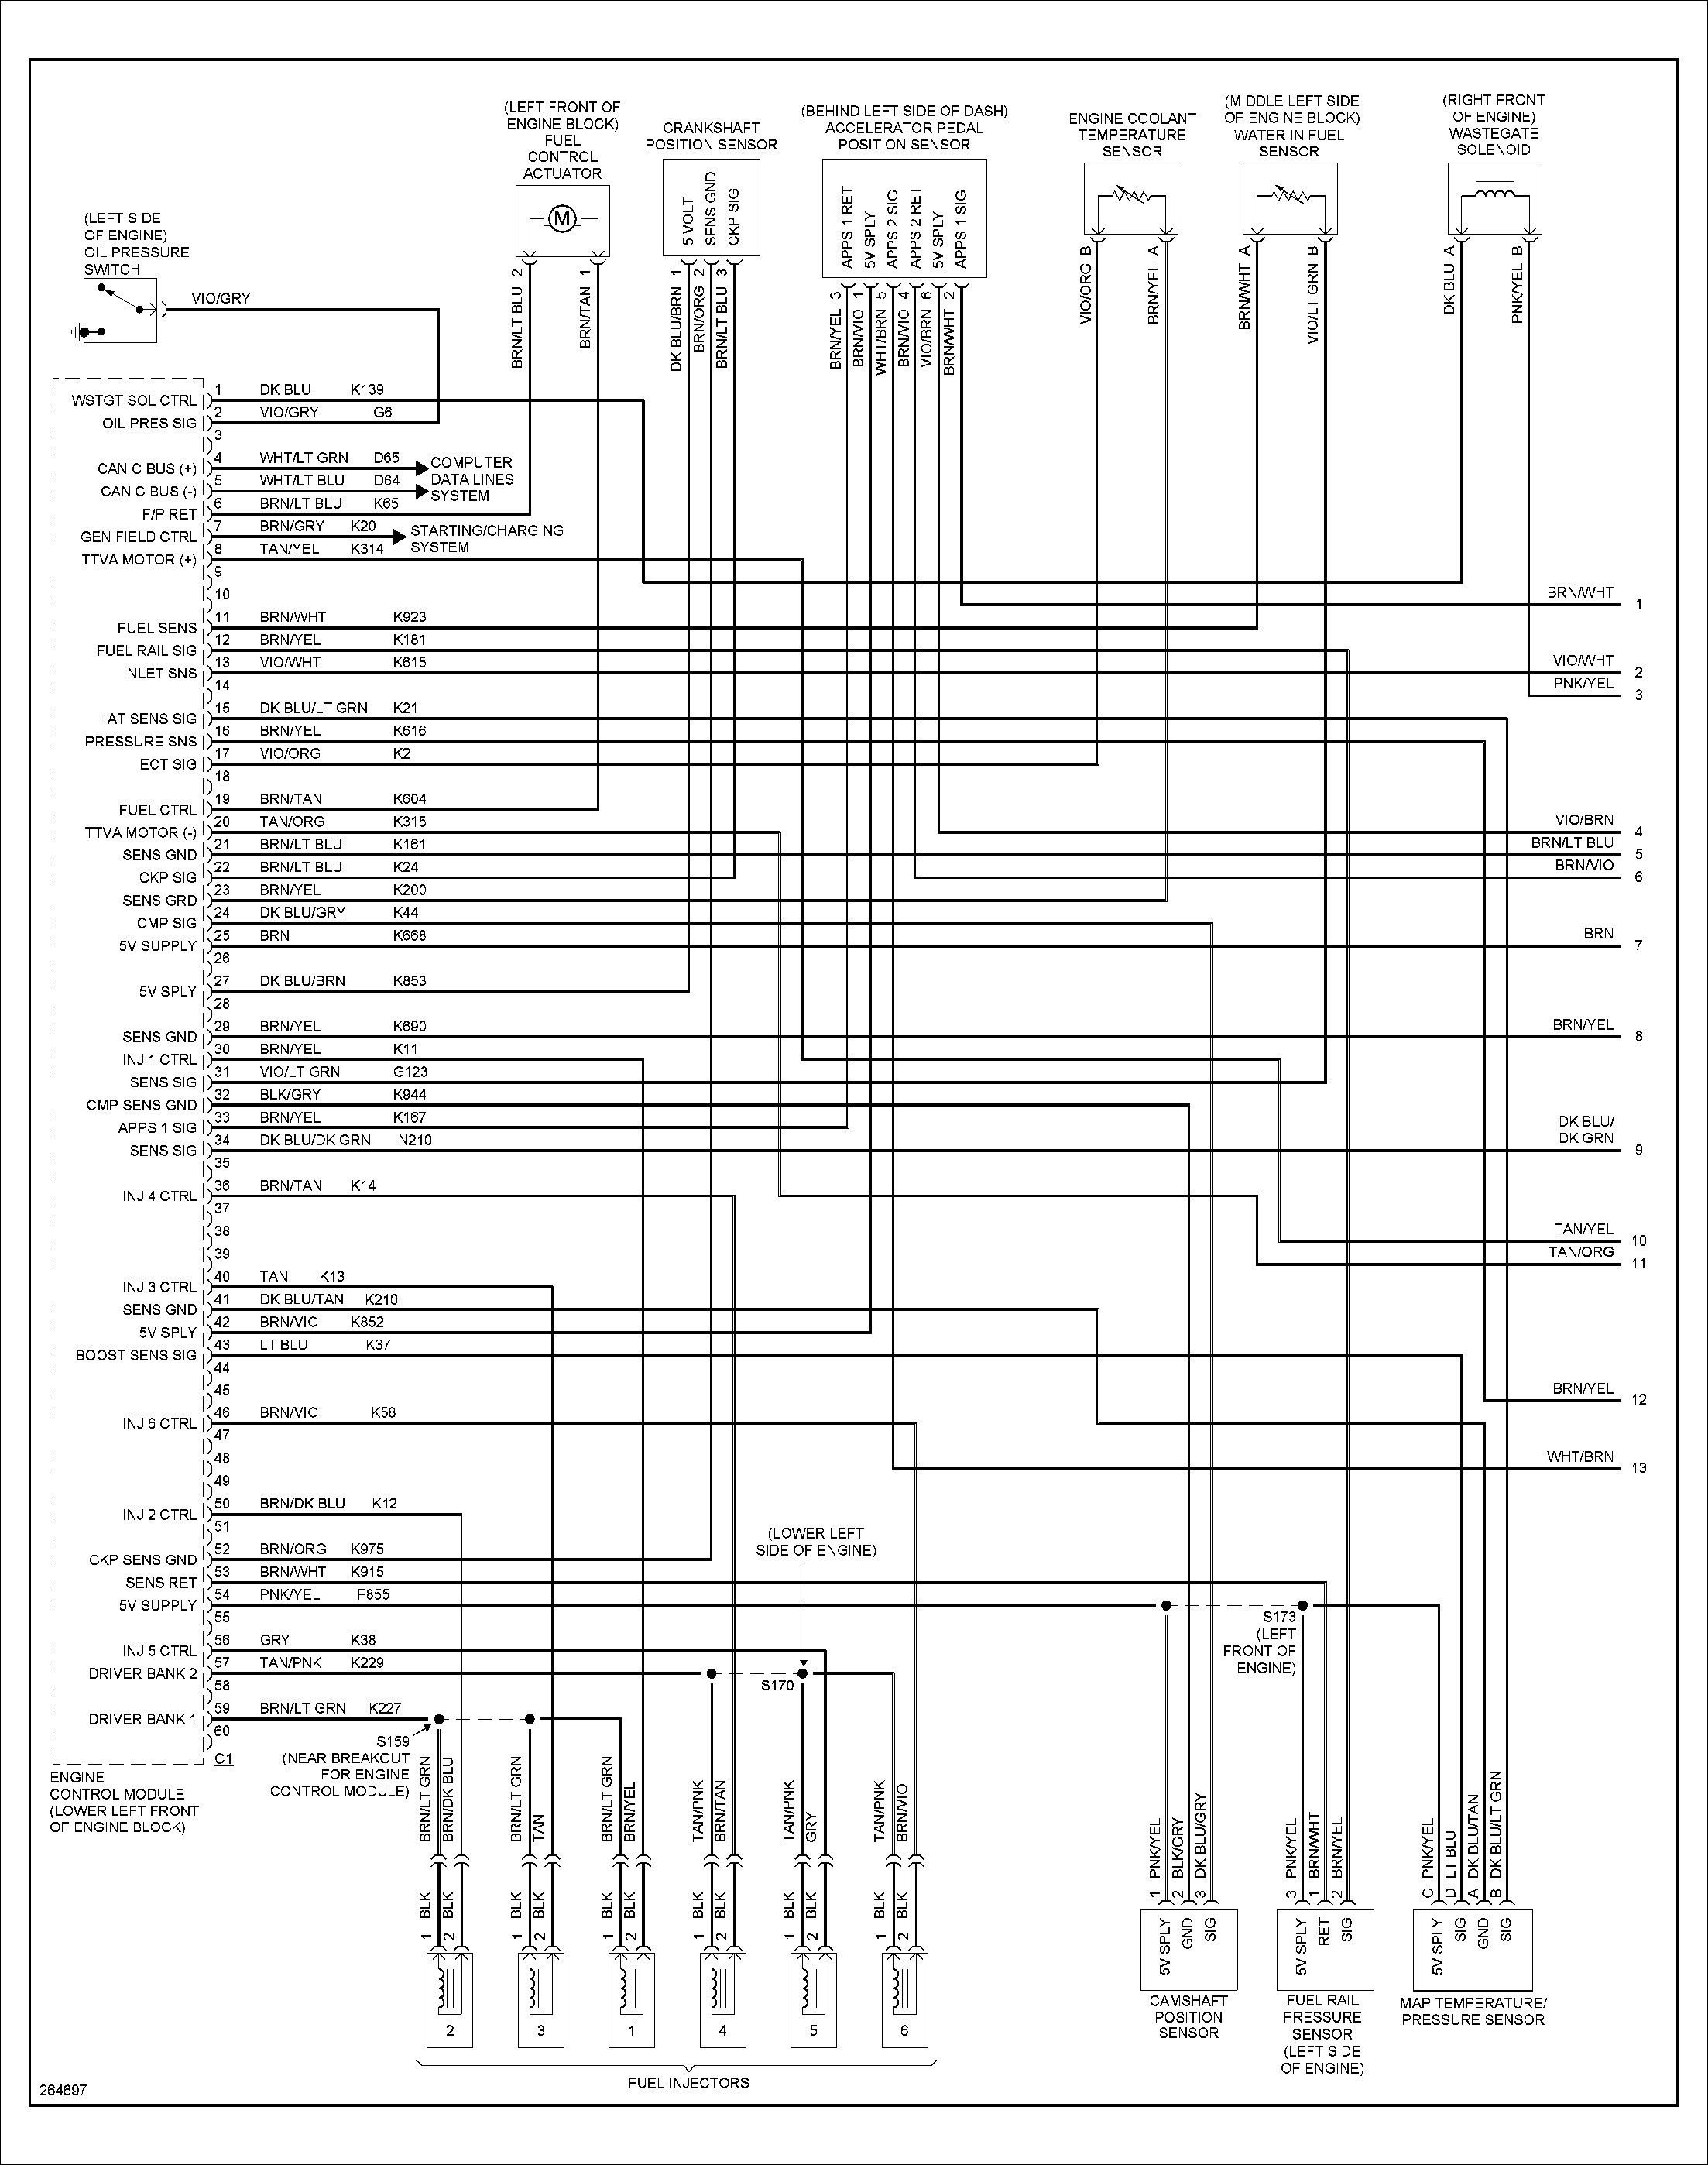 2008 dodge ram 2500 stereo wiring diagram - 6 way switch wiring diagrams  for wiring diagram schematics  wiring diagram schematics